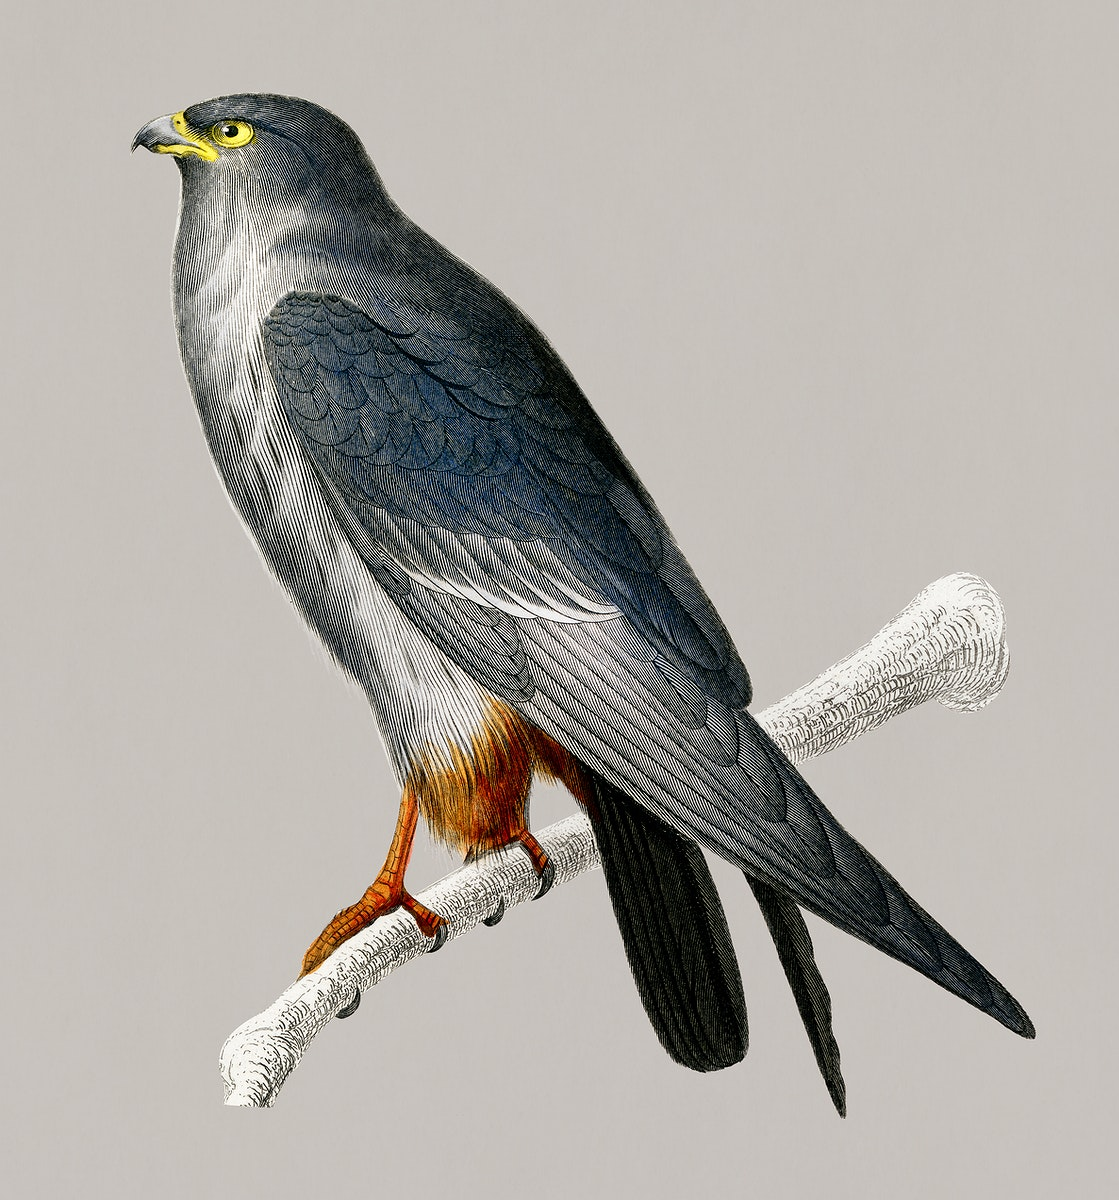 Vintage Illustration of Red-footed Falcon.